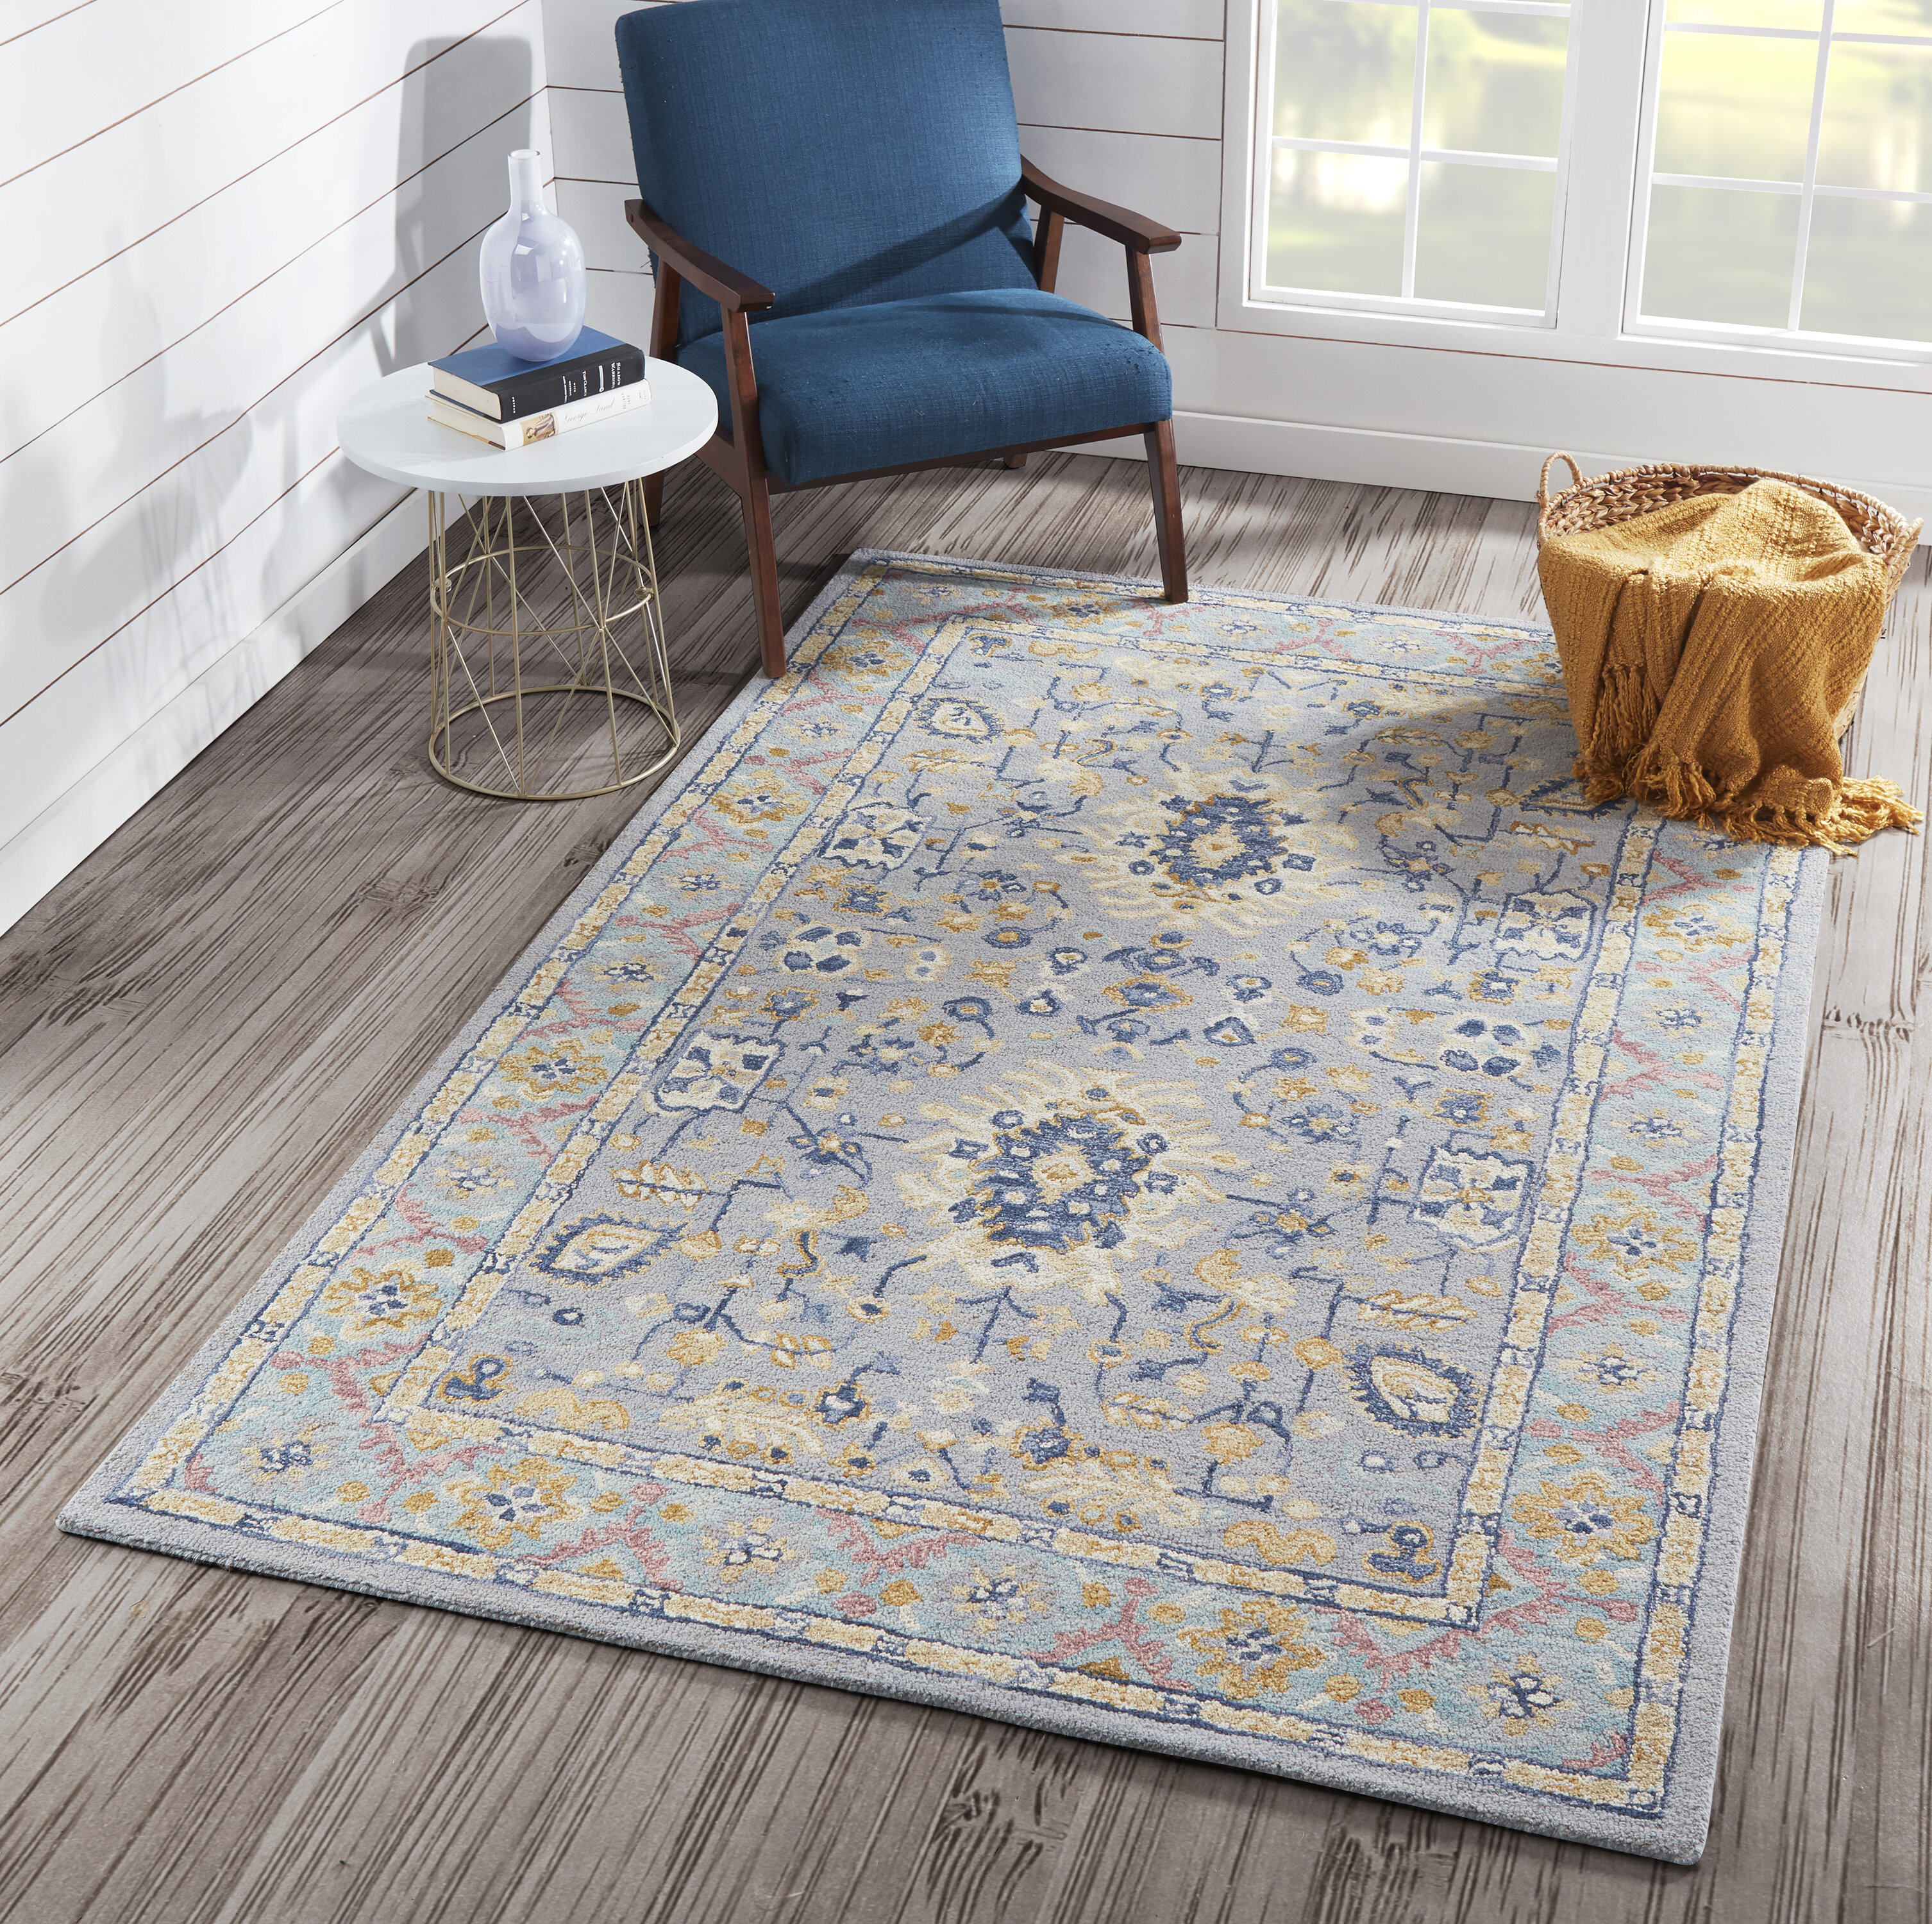 Bowers Hand Tufted Wool Blue Area Rug Reviews Joss Main